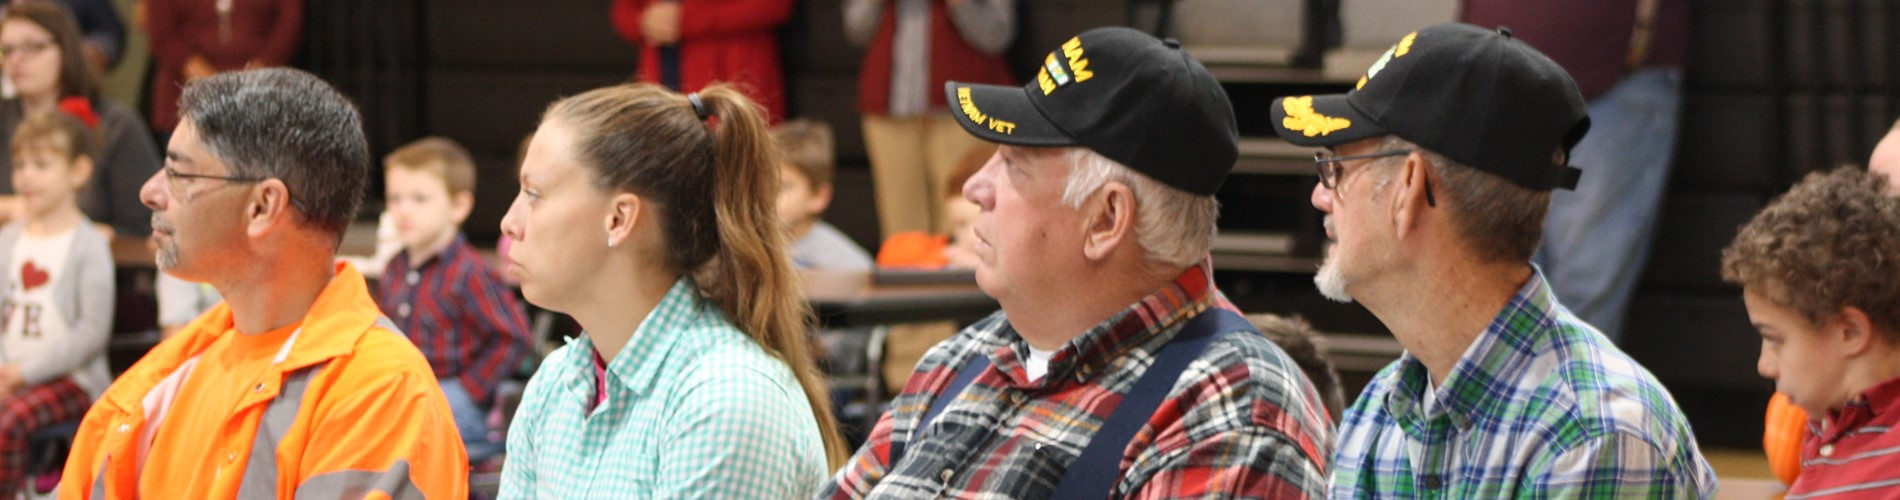 Veterans from our community